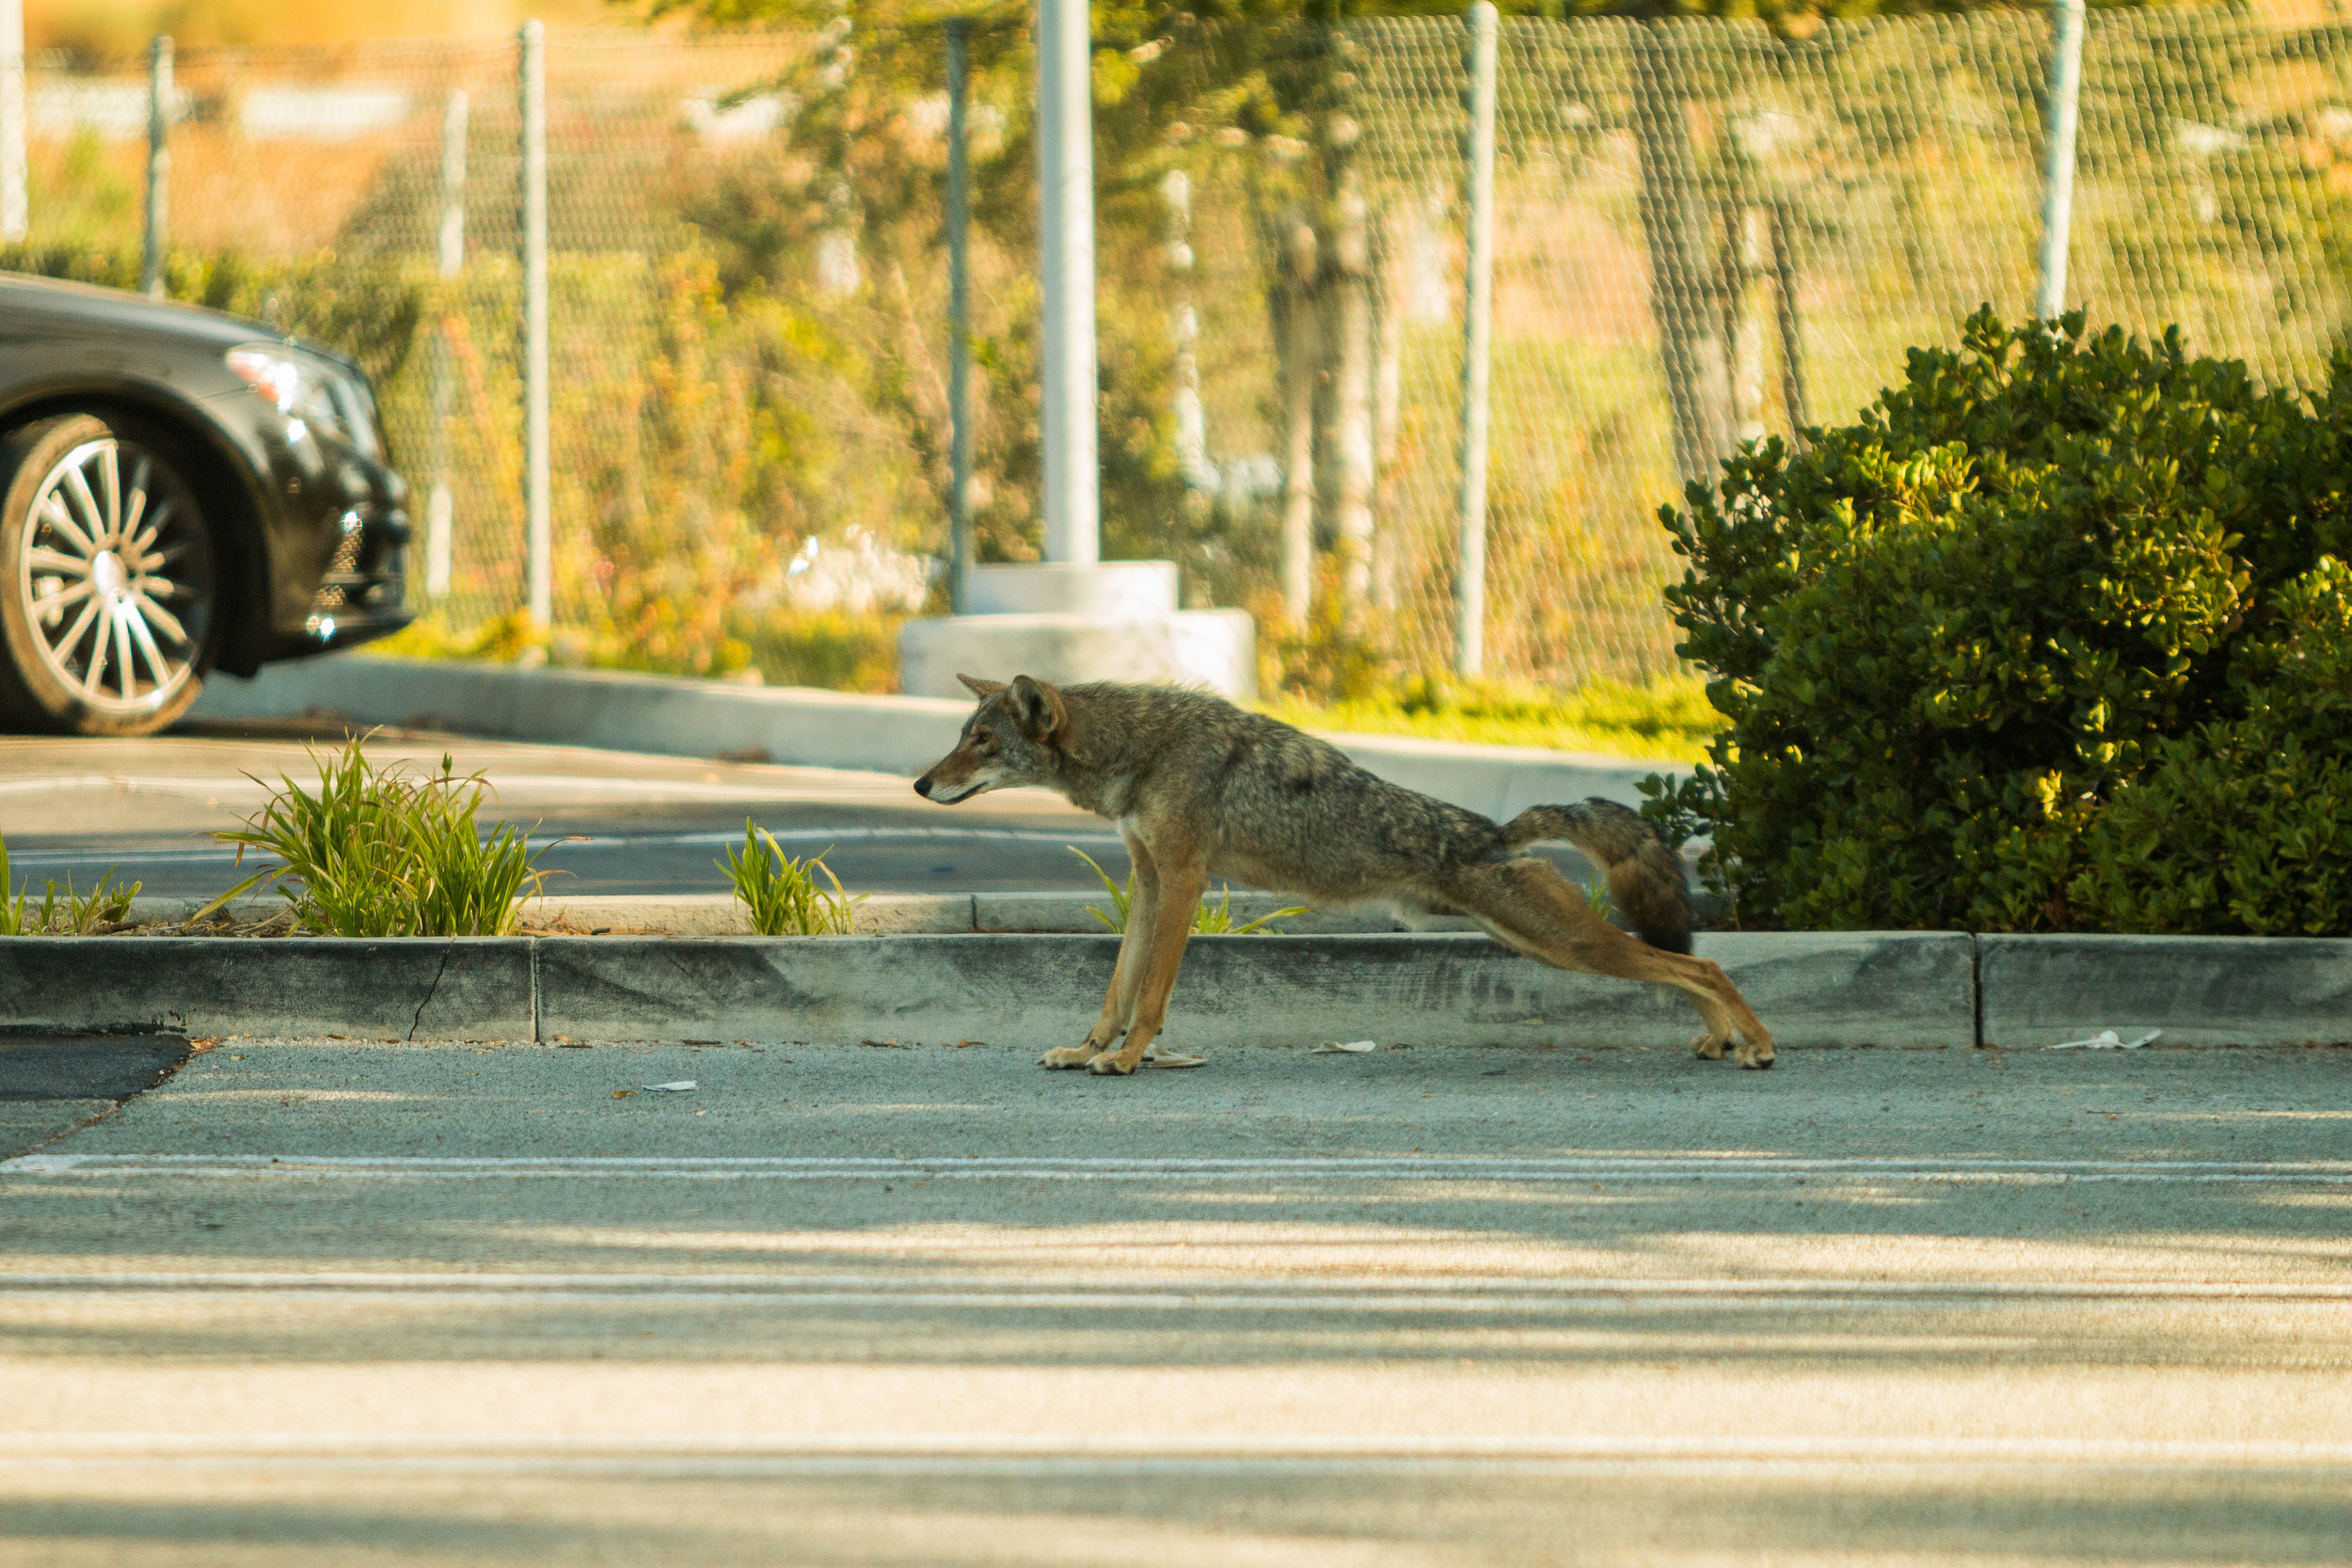 A coyote gives off a daytime stretch in urban California. (Photo | NPS)